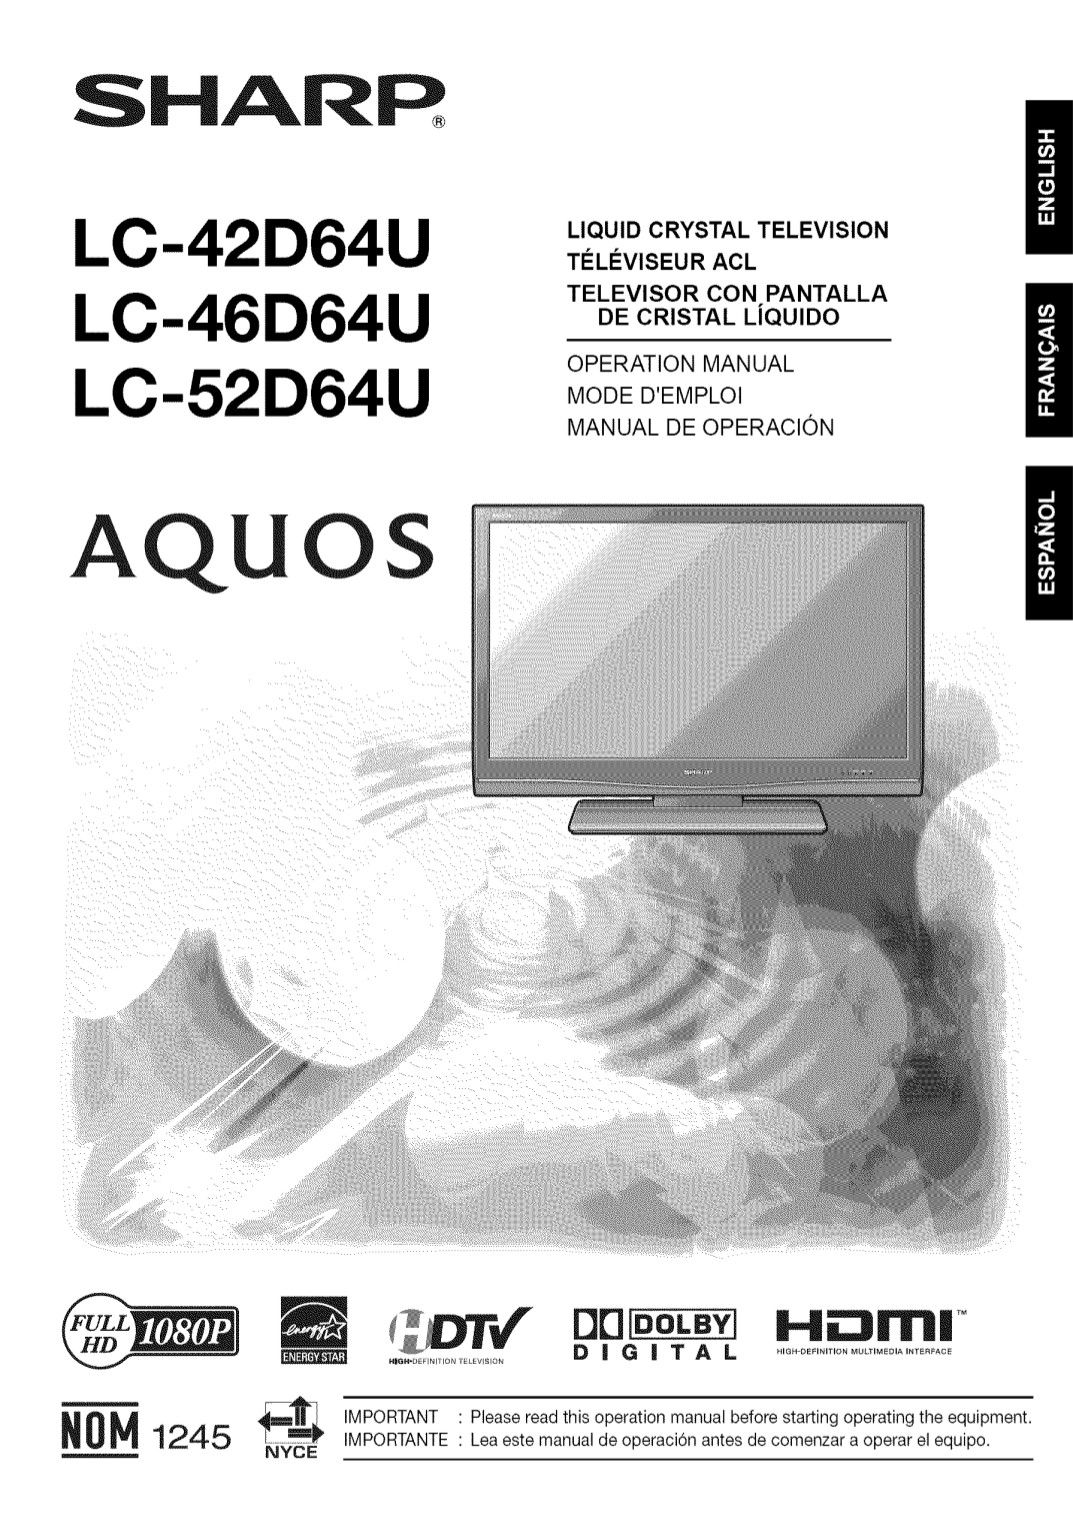 download free pdf for sharp aquos lc 46d64u tv manual rh umlib com sharp aquos lc46d64u manual Sharp AQUOS Troubleshoot